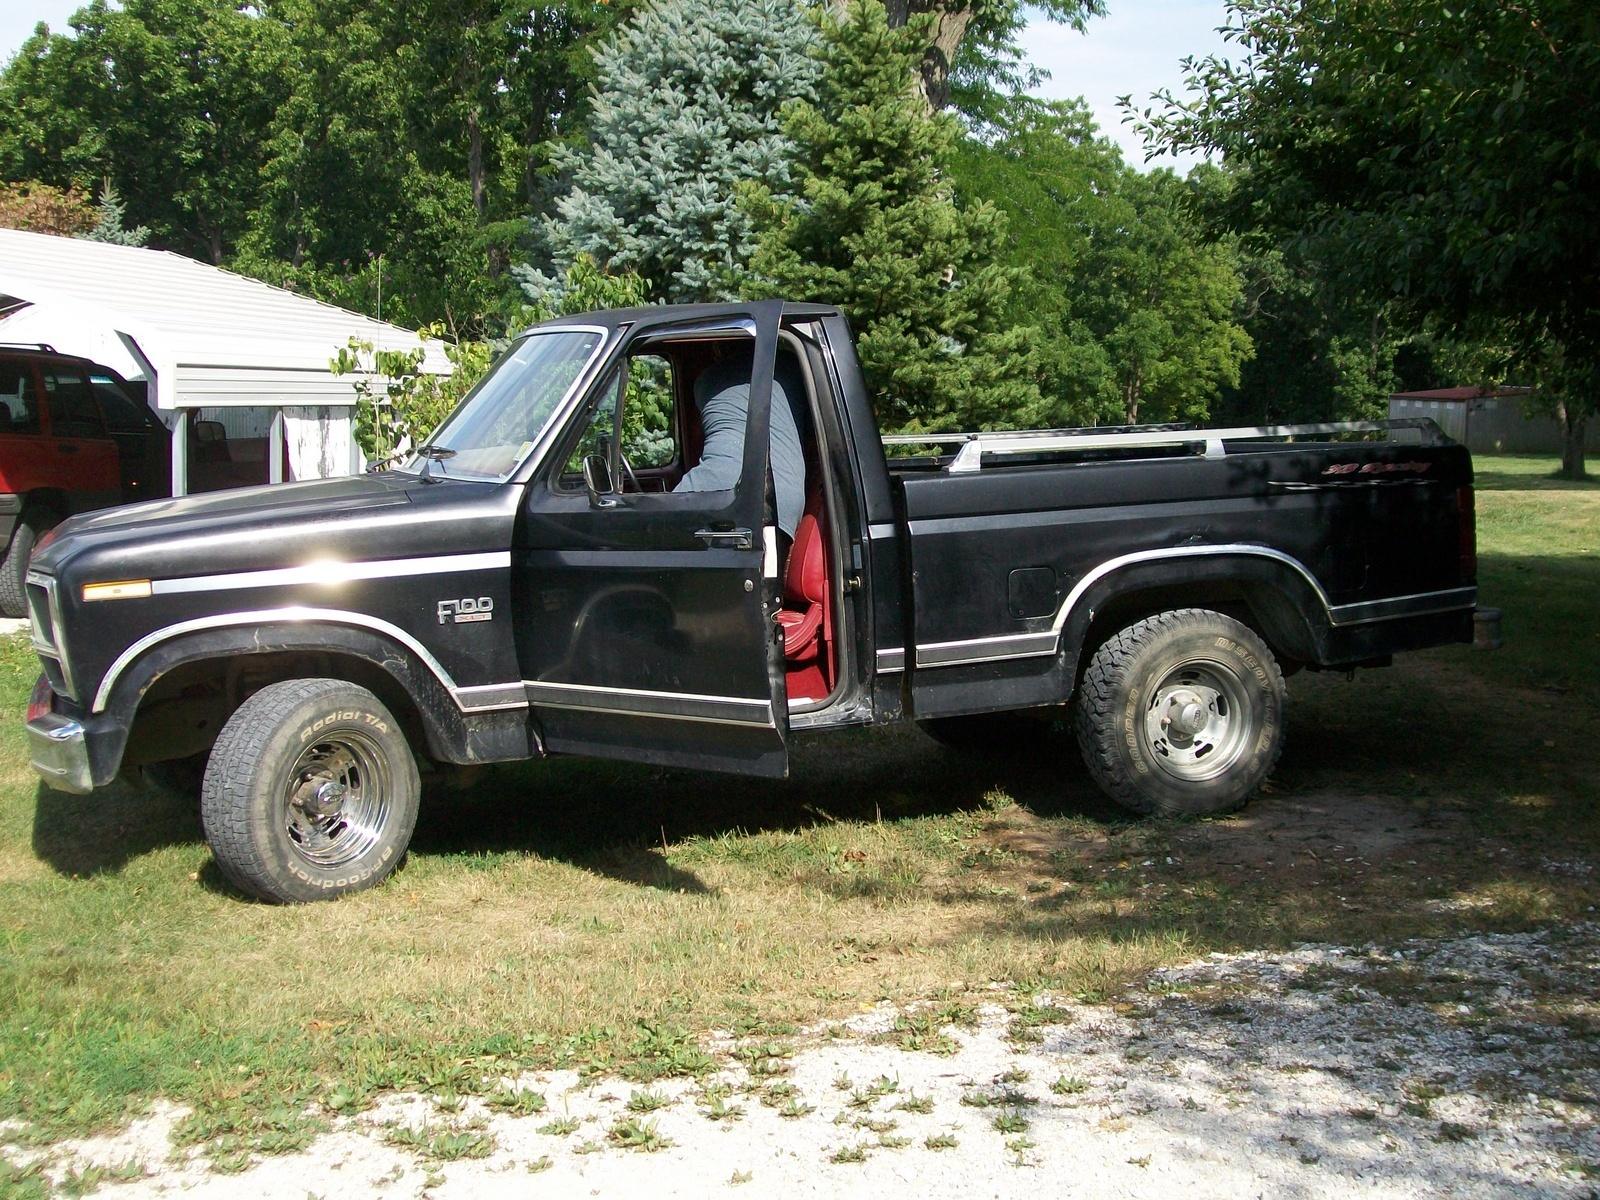 List Of Synonyms And Antonyms The Word 1983 Ford Truck 1970 F 150 4x4 F150